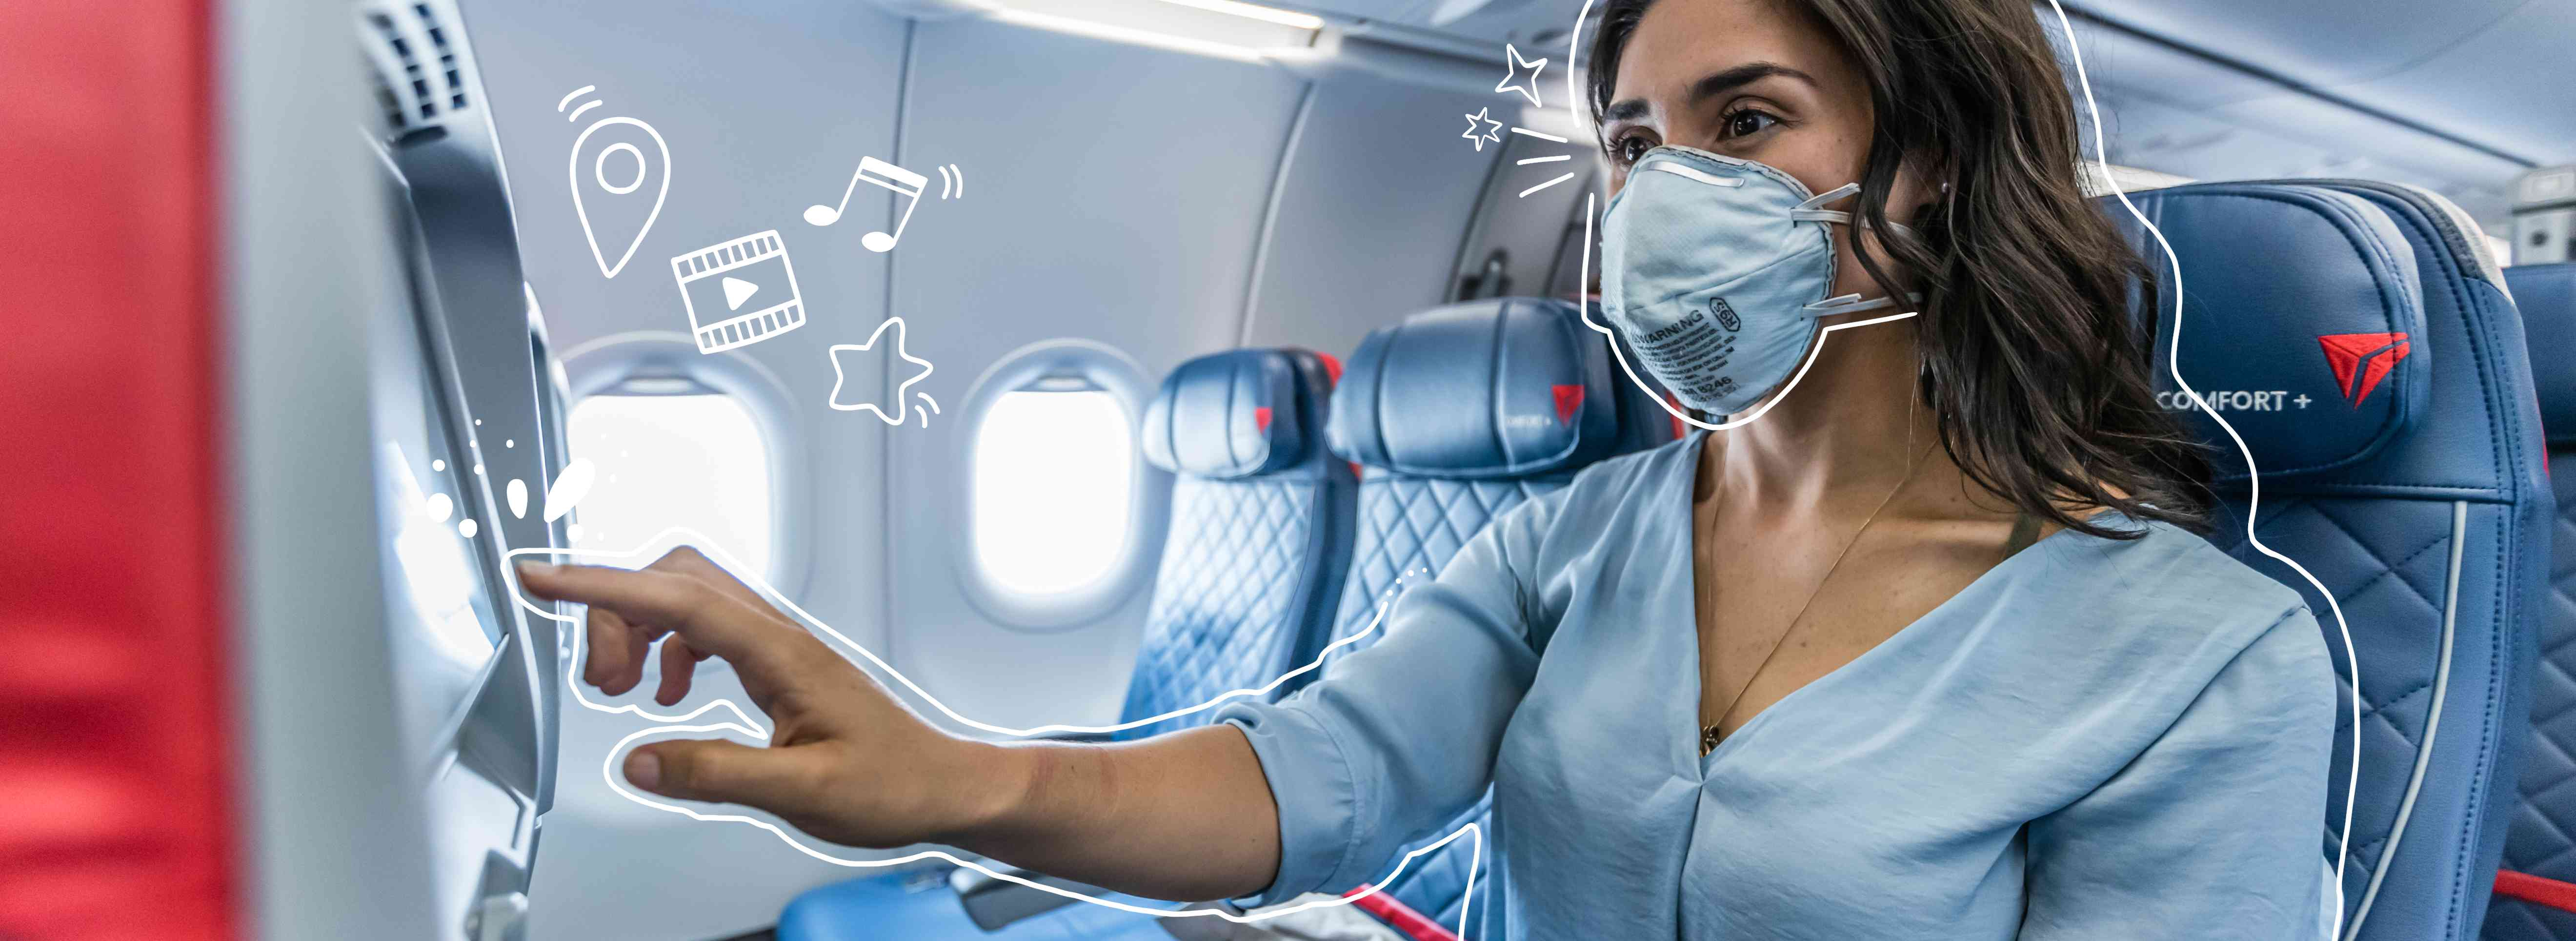 A woman flying Delta with a mask touch the screen. Illustrated white lines al around her.